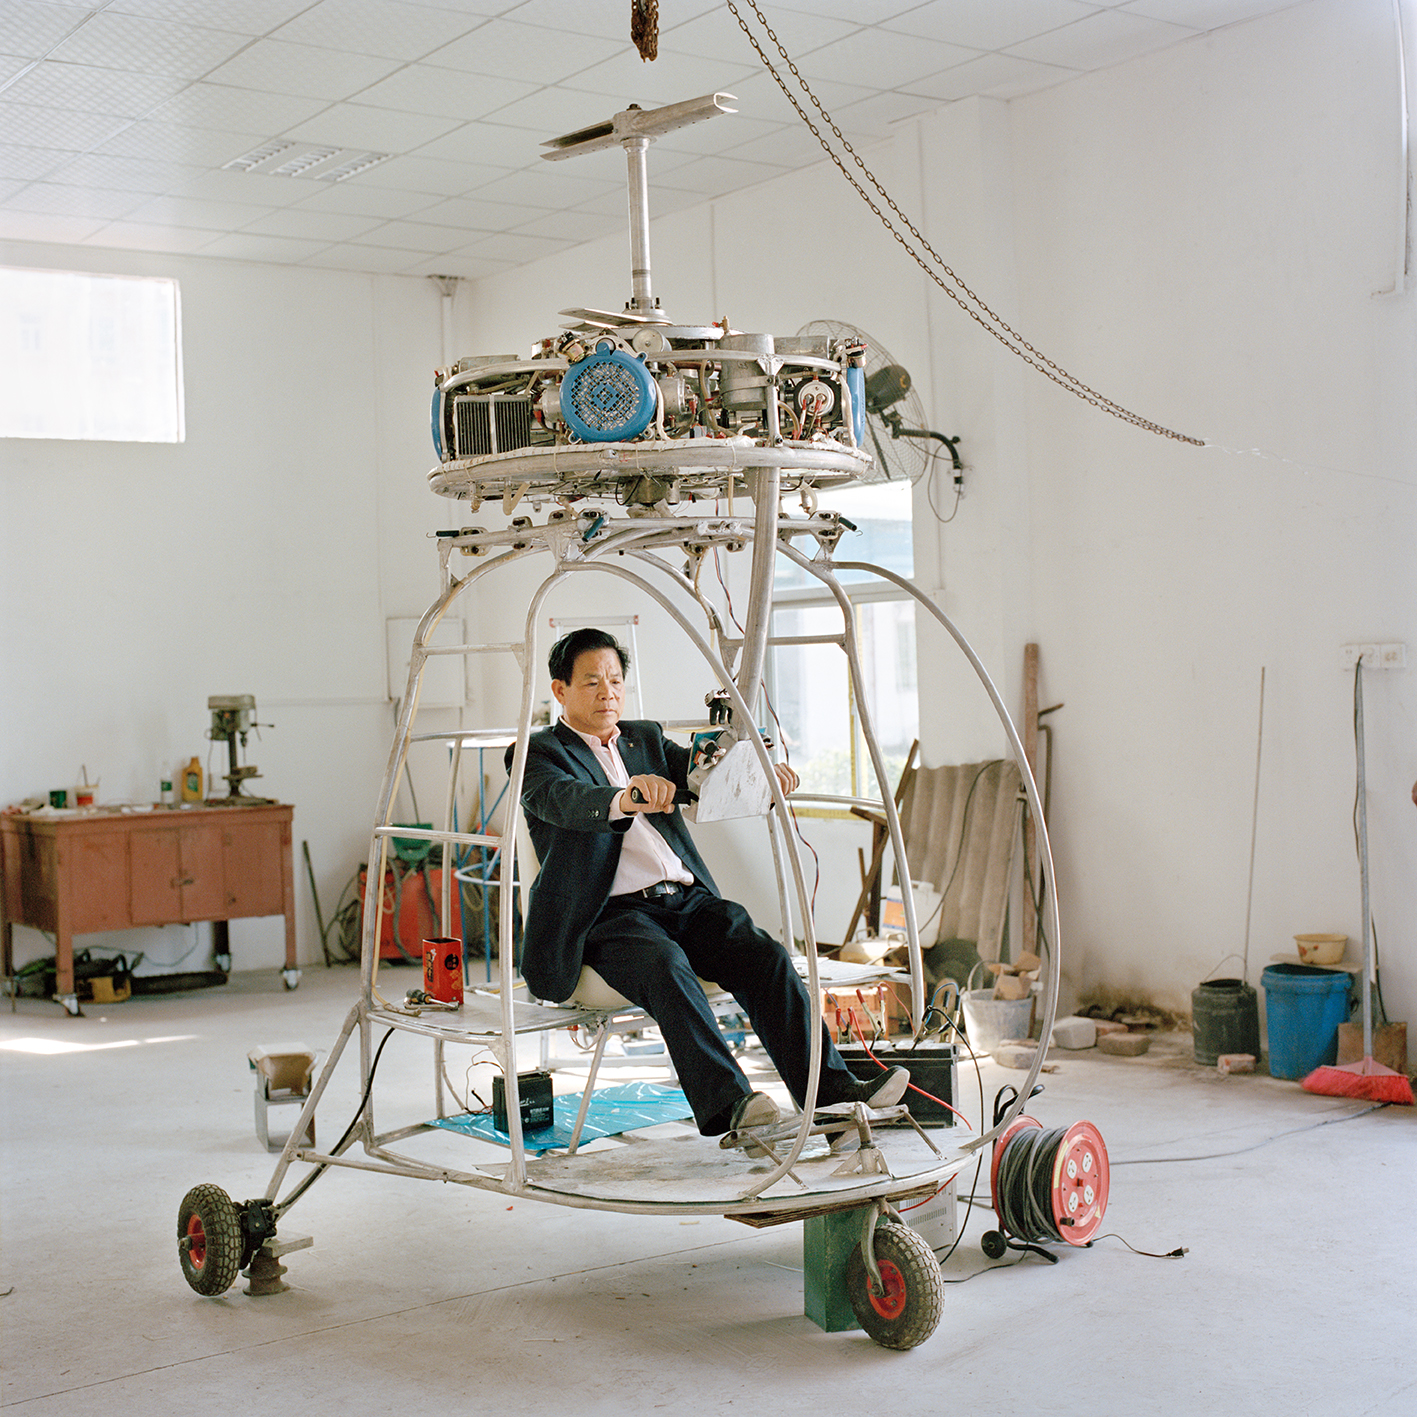 xiaoxiao-xu-aeronautics-in-the-backyards-2015-photography-of-china-04.jpg